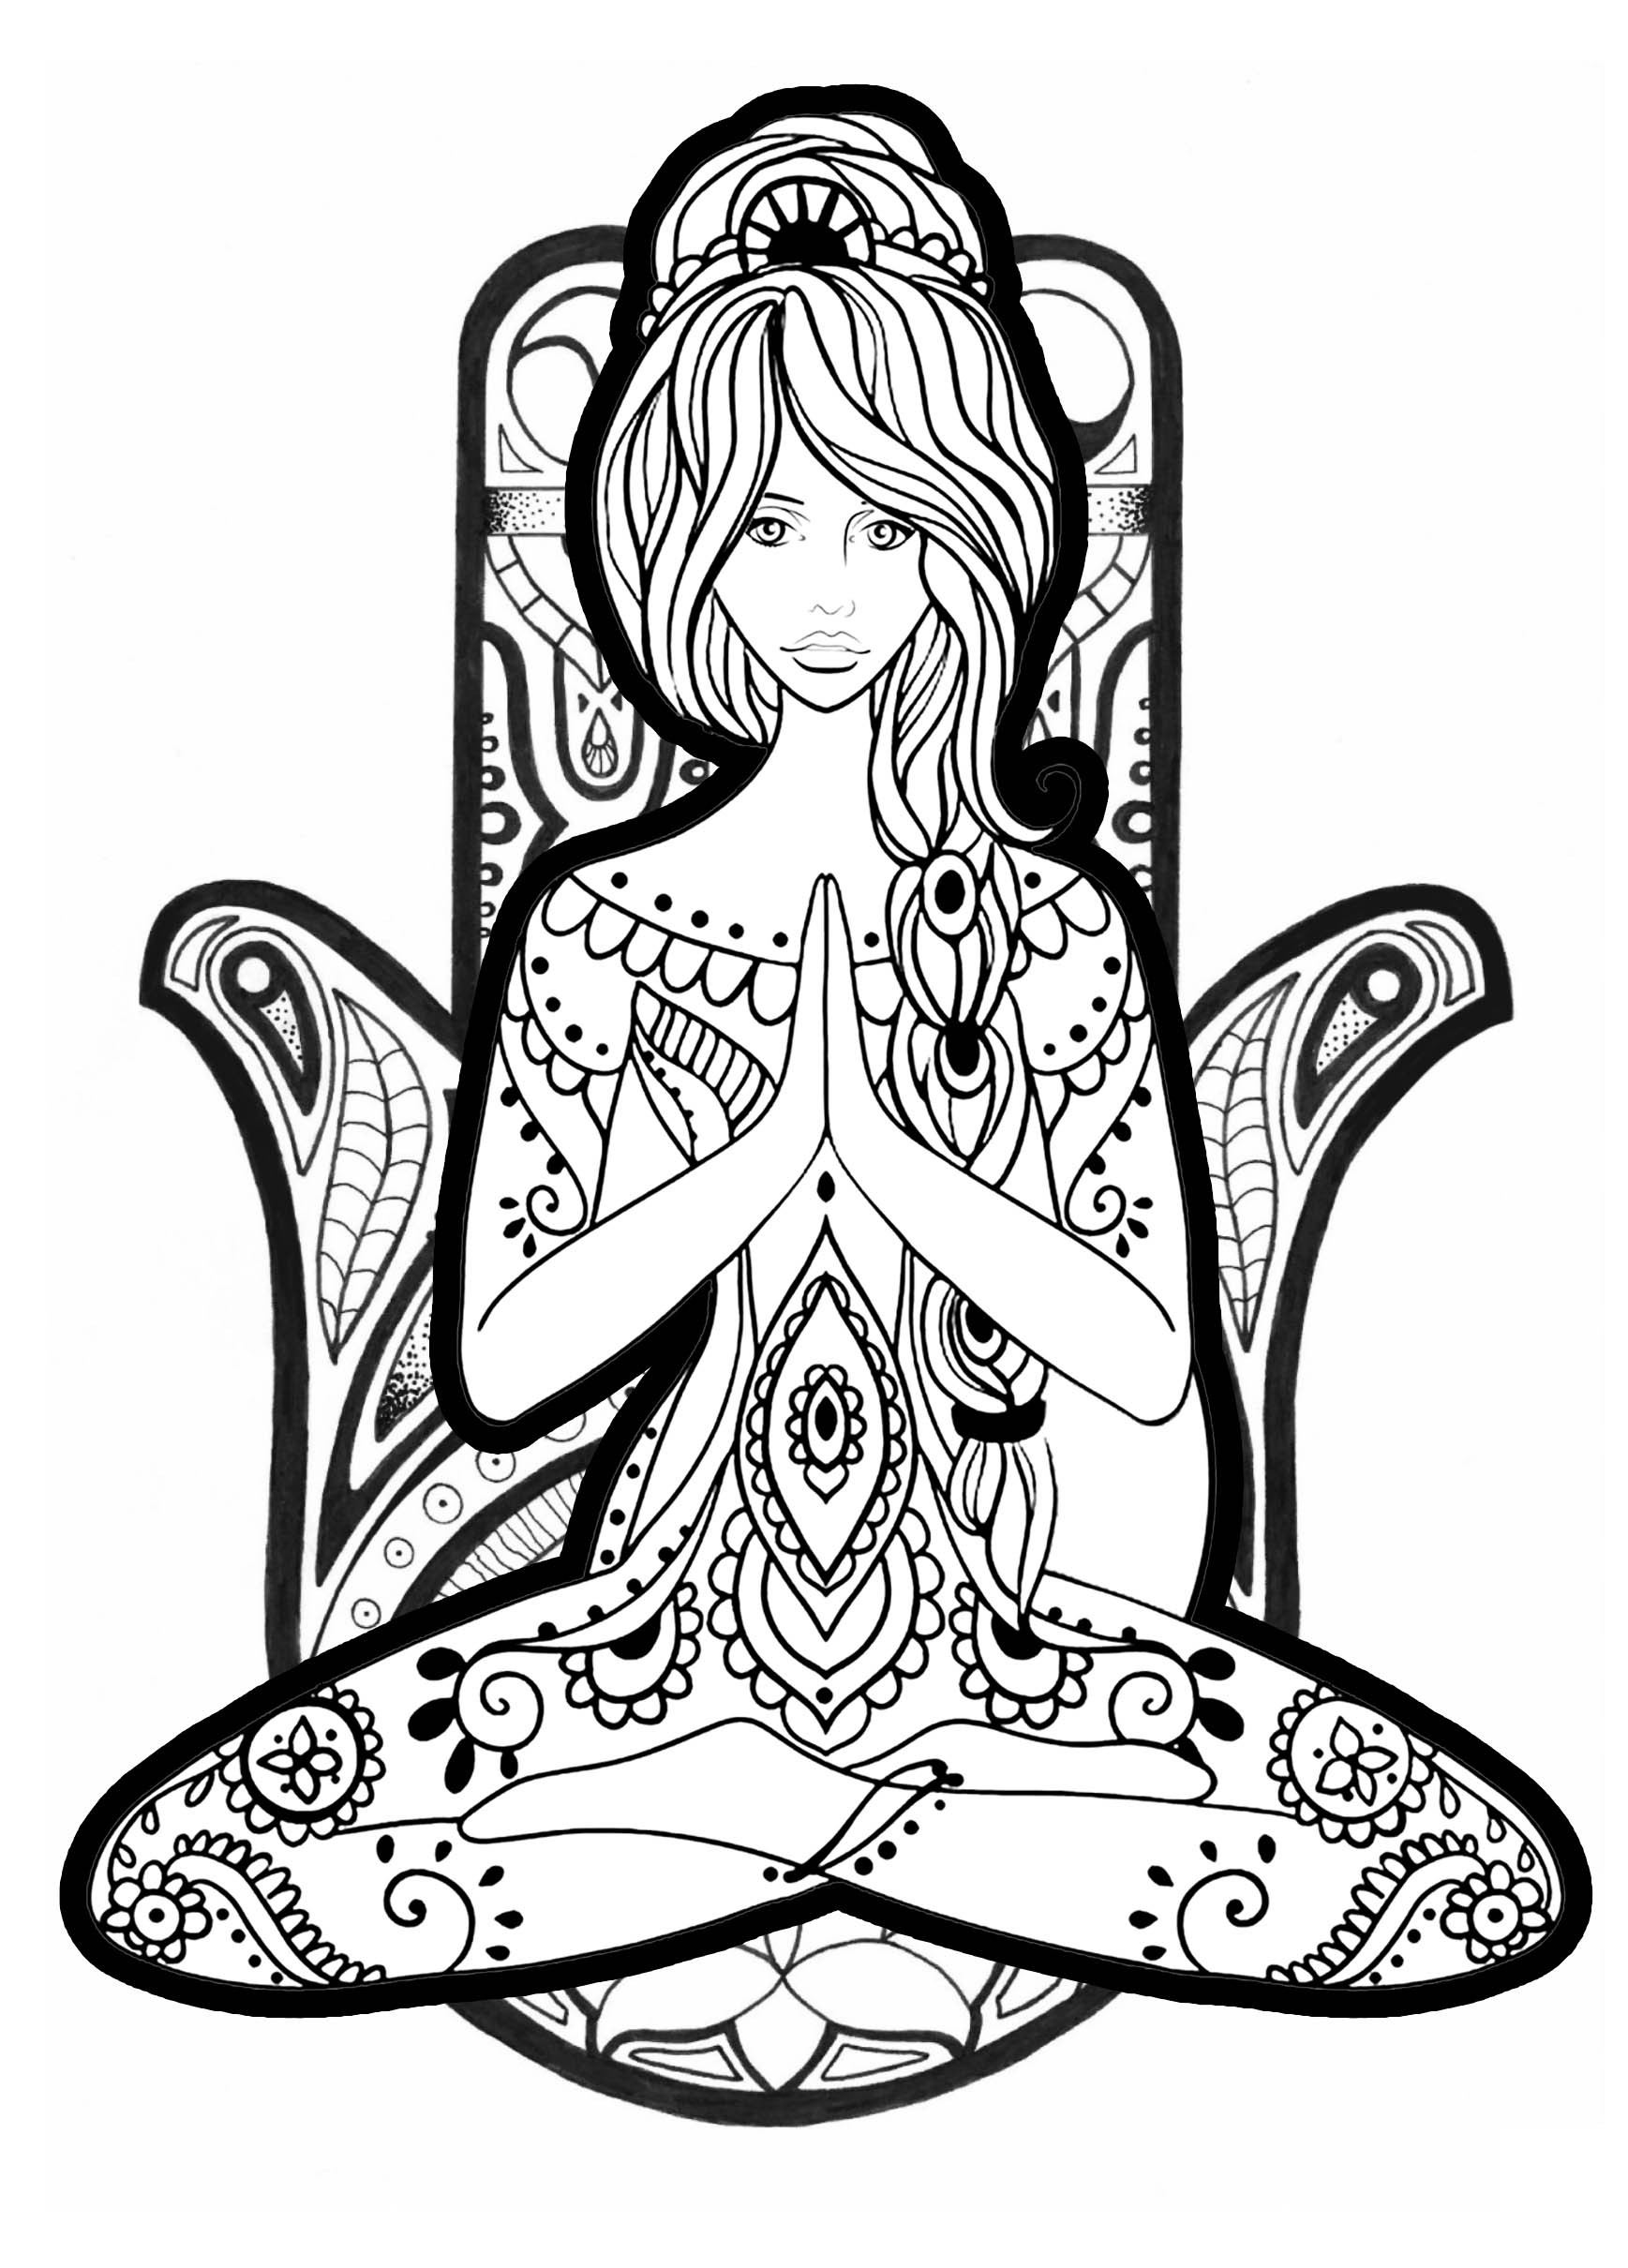 Yoga Coloring Pages  Yoga 2 Anti stress Adult Coloring Pages